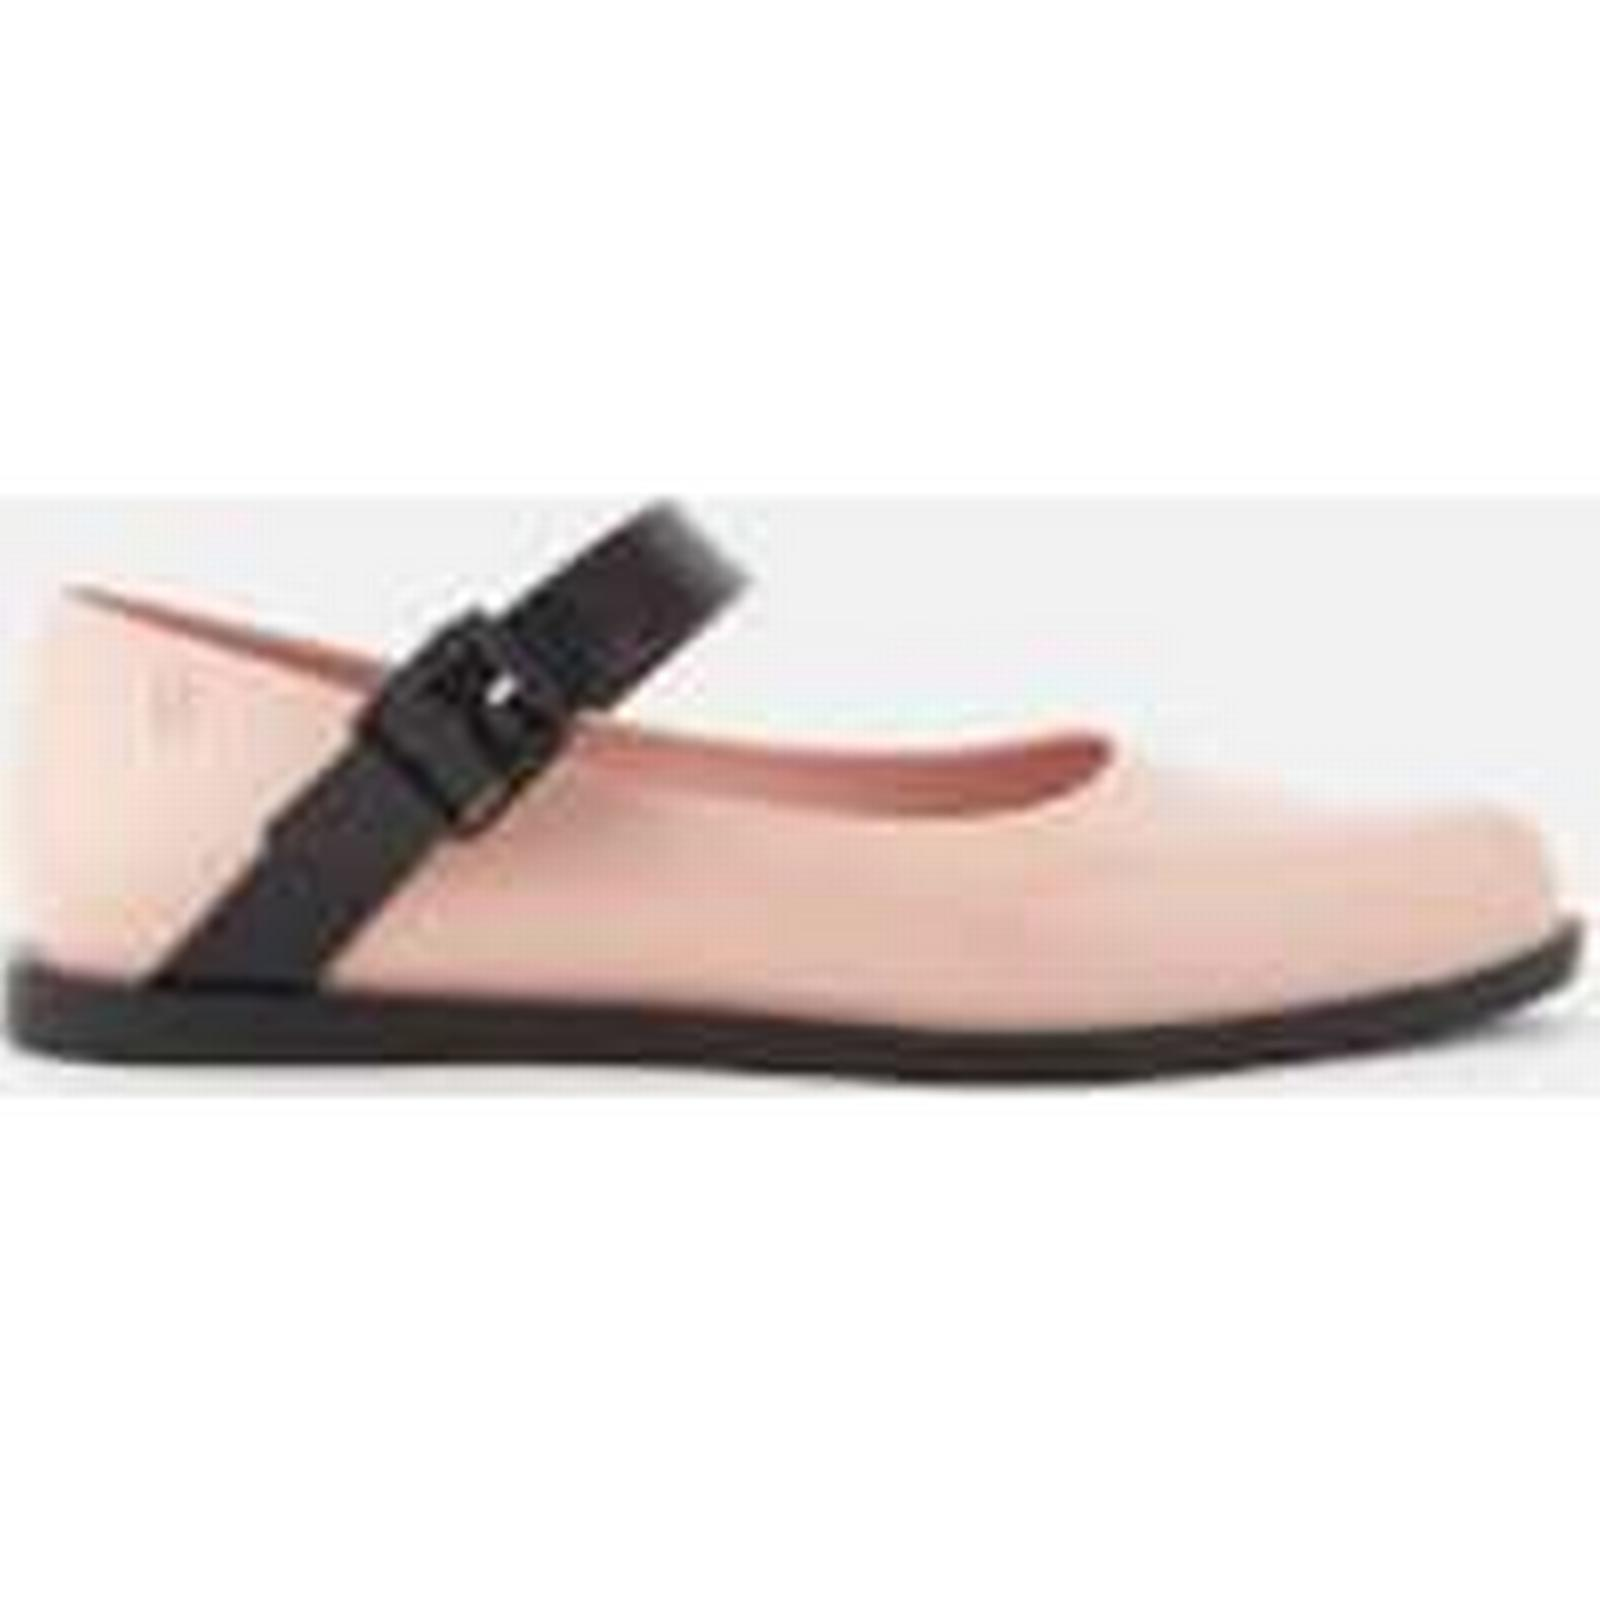 Melissa Women's - Mary Jane Flat Shoes - Women's Blush Contrast - UK 6 - Pink 0d63e4